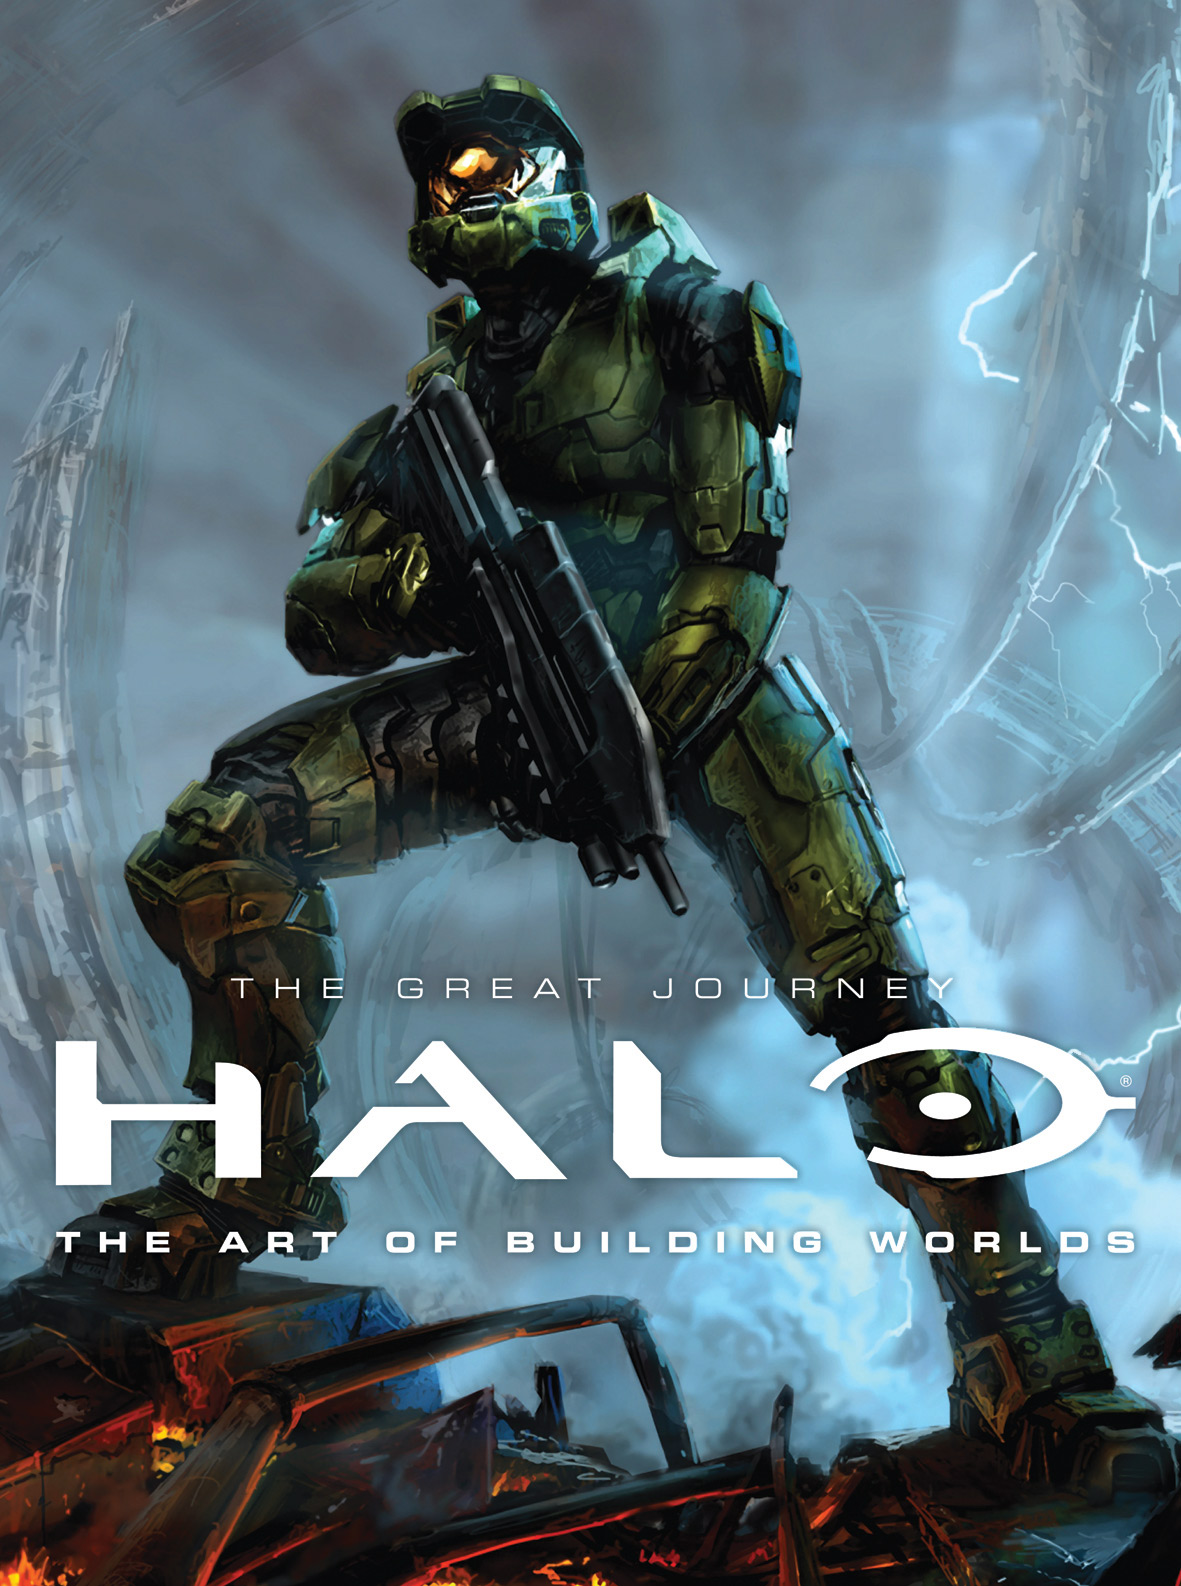 Halo: The Great Journey: The Art of Building Worlds